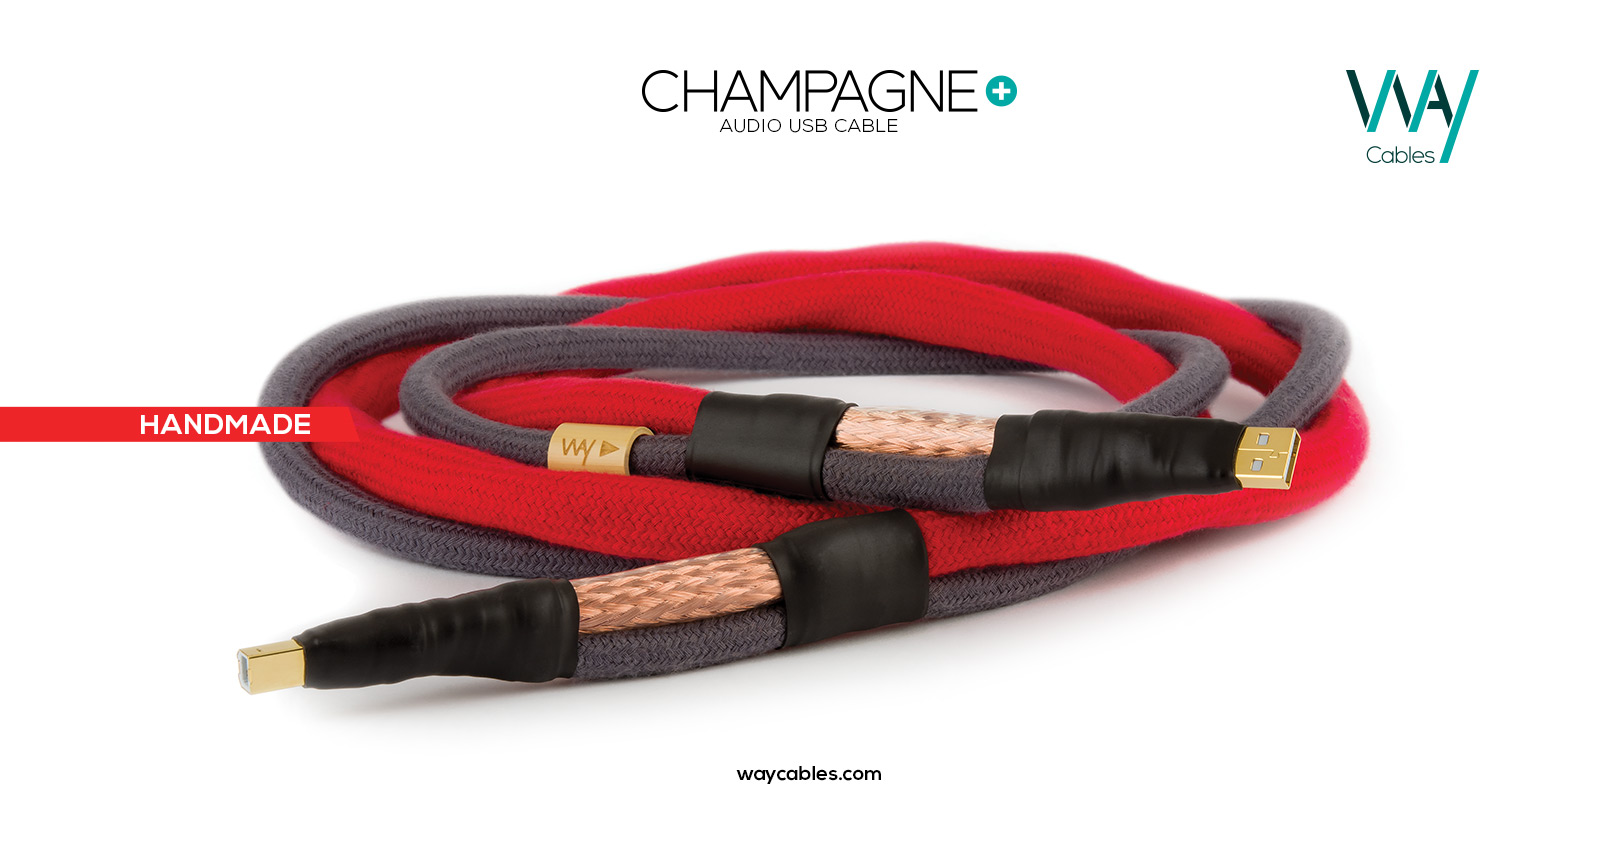 hight resolution of way cables digital audio usb cable champagne plus usb